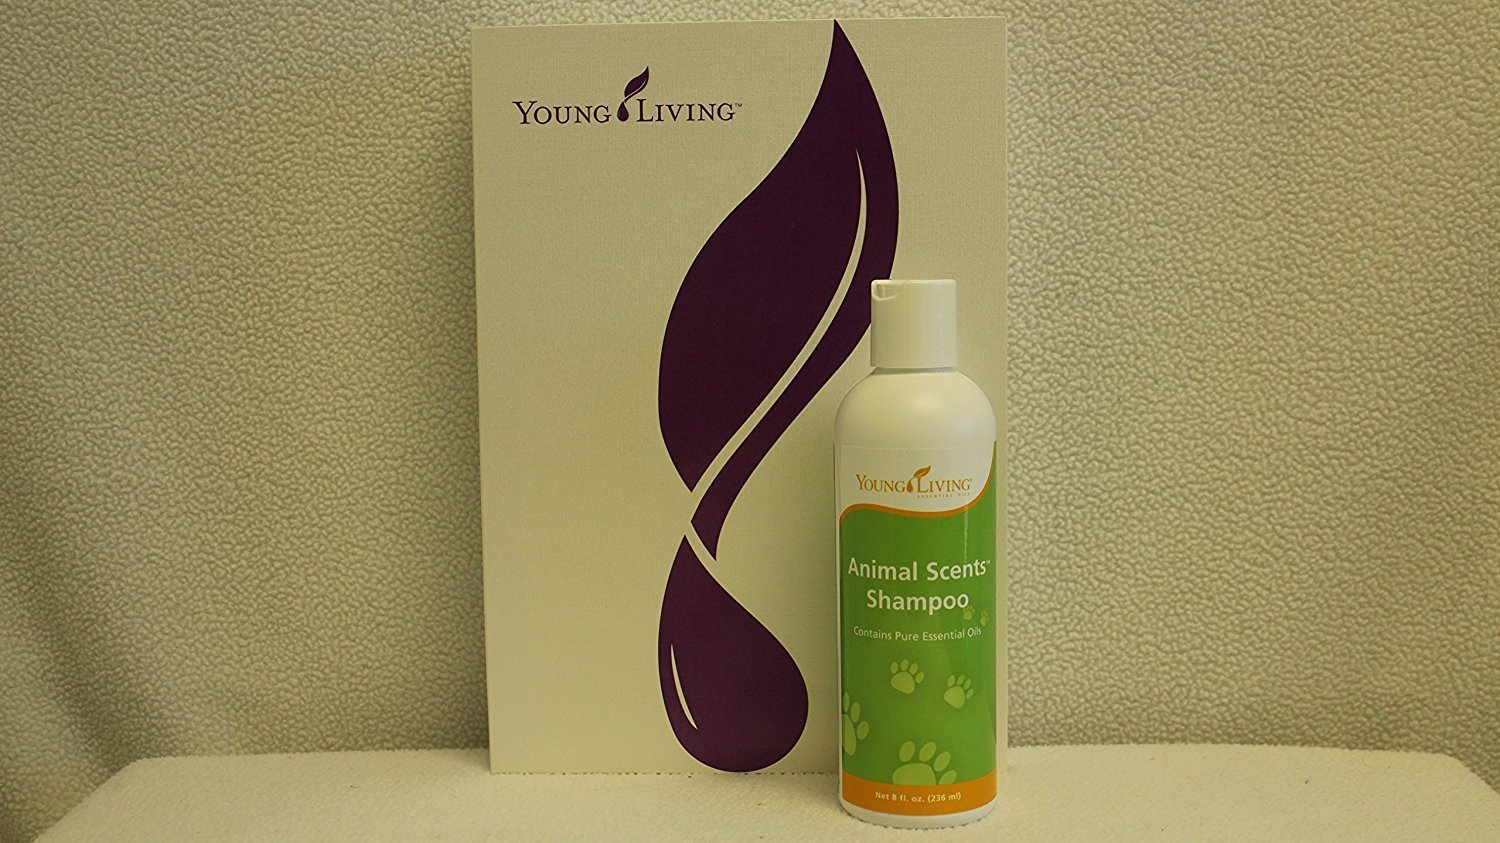 Animal Scents Pet Shampoo 8 fl oz by Young Living Essential Oils